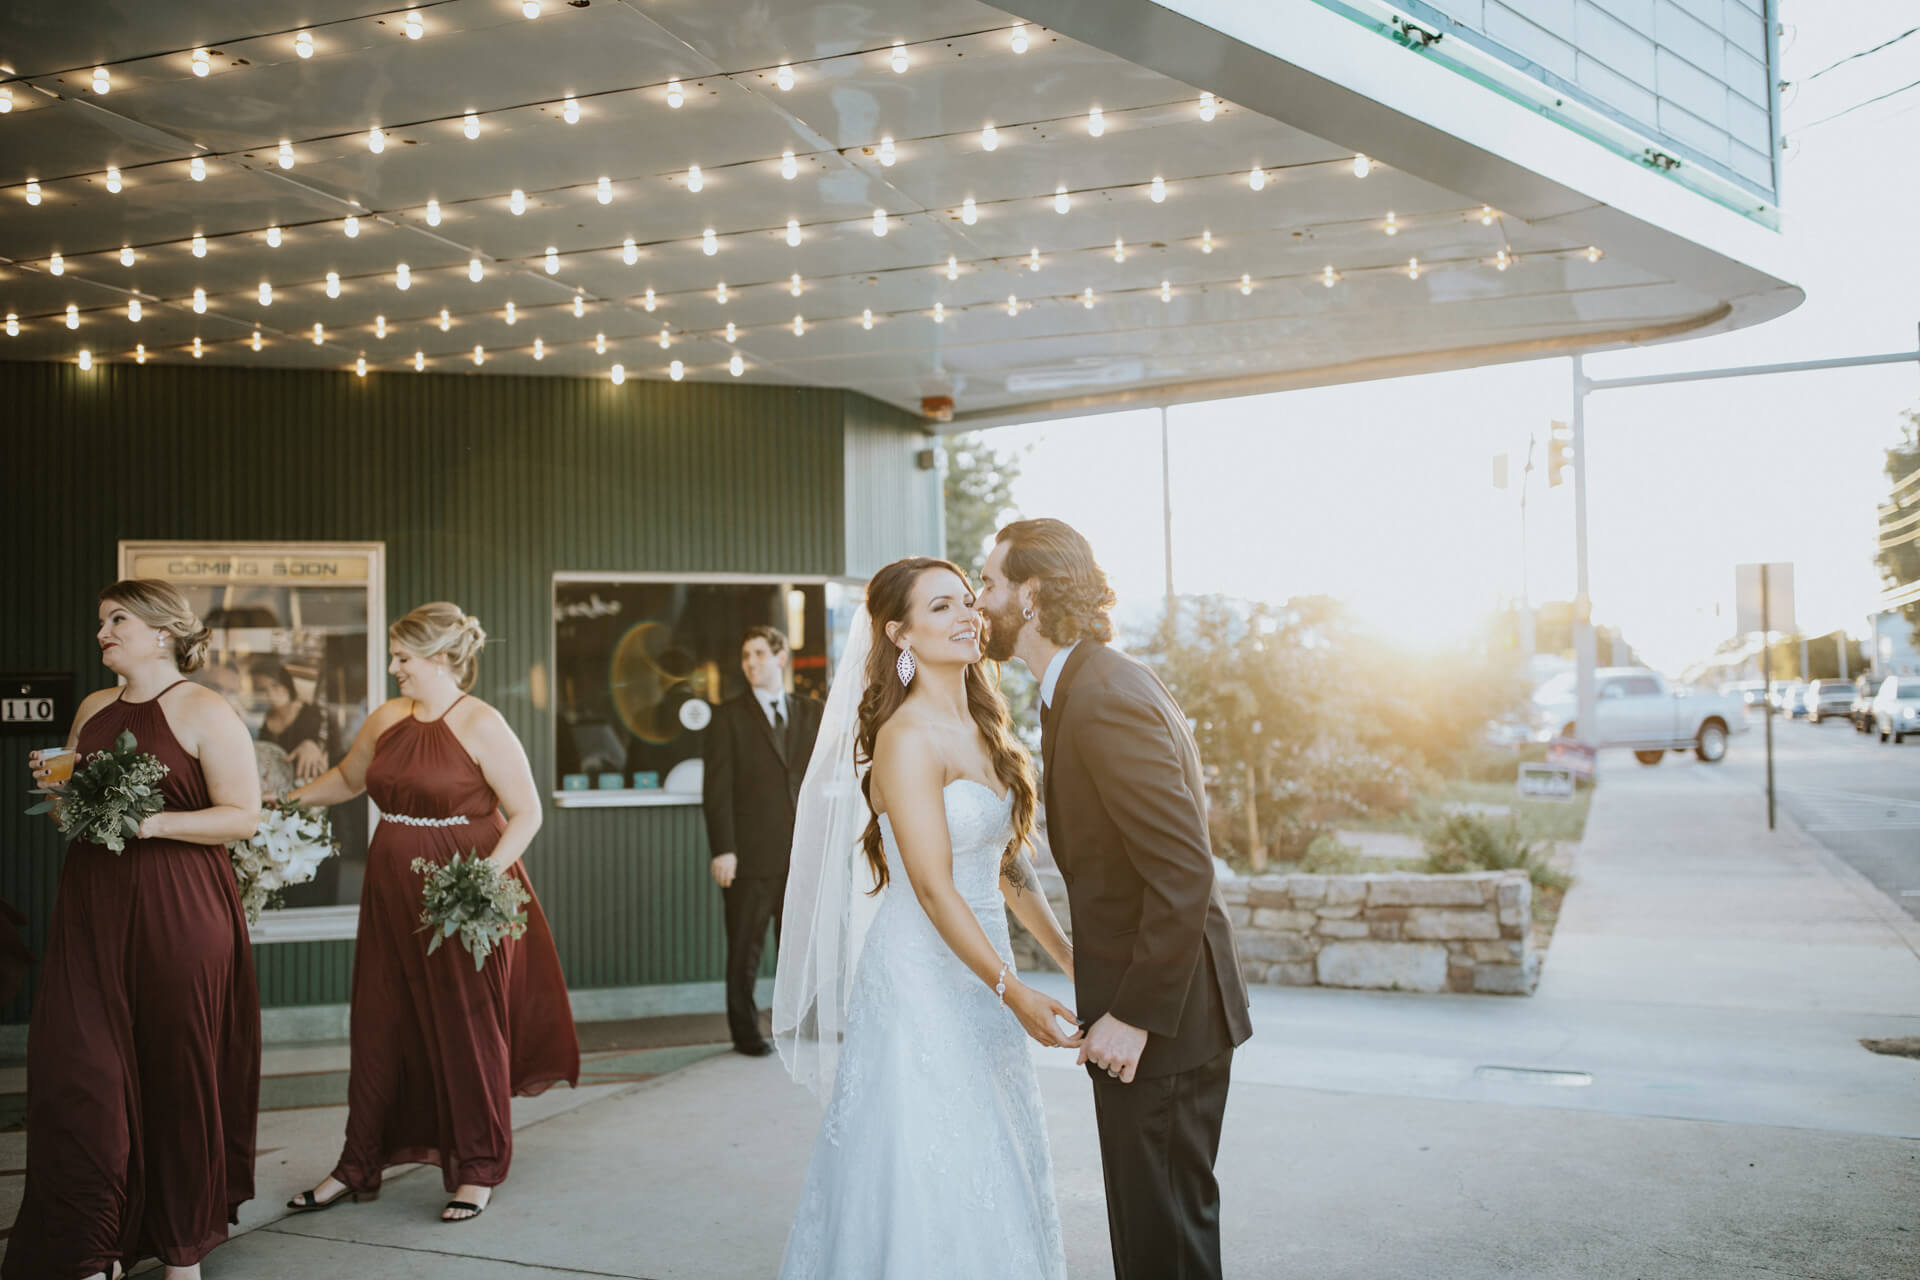 Nashville Wedding Photographer | Cluney Photography